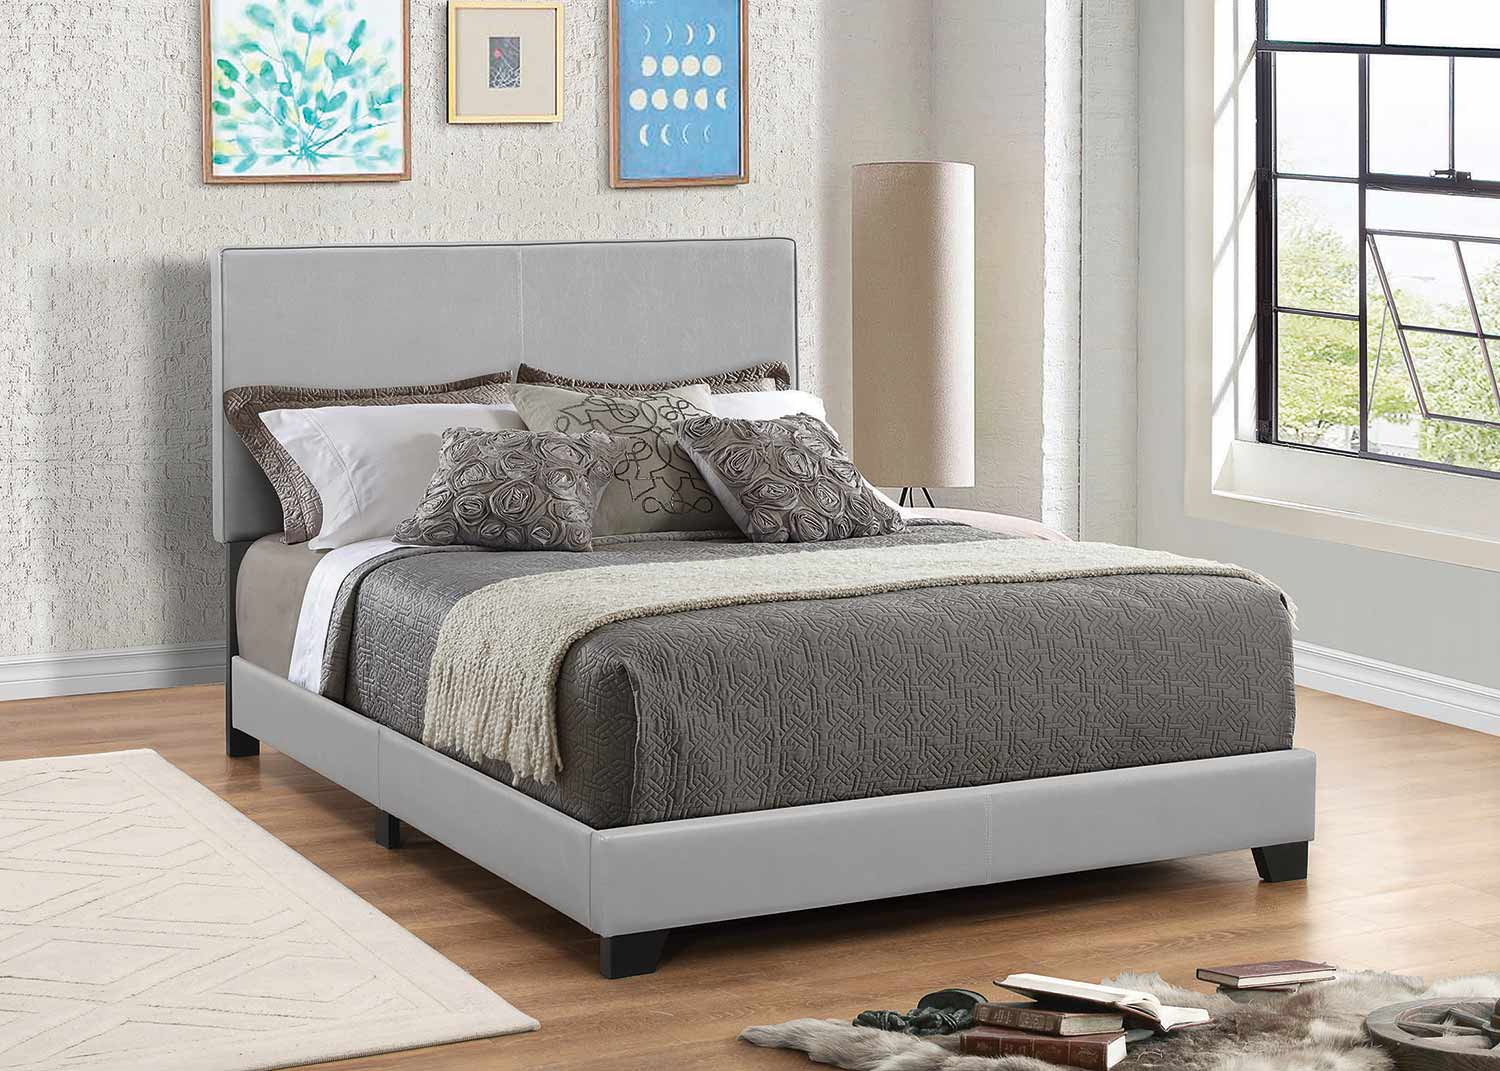 Coaster Dorian Low Profile Upholstered Bed - Gray Leatherette